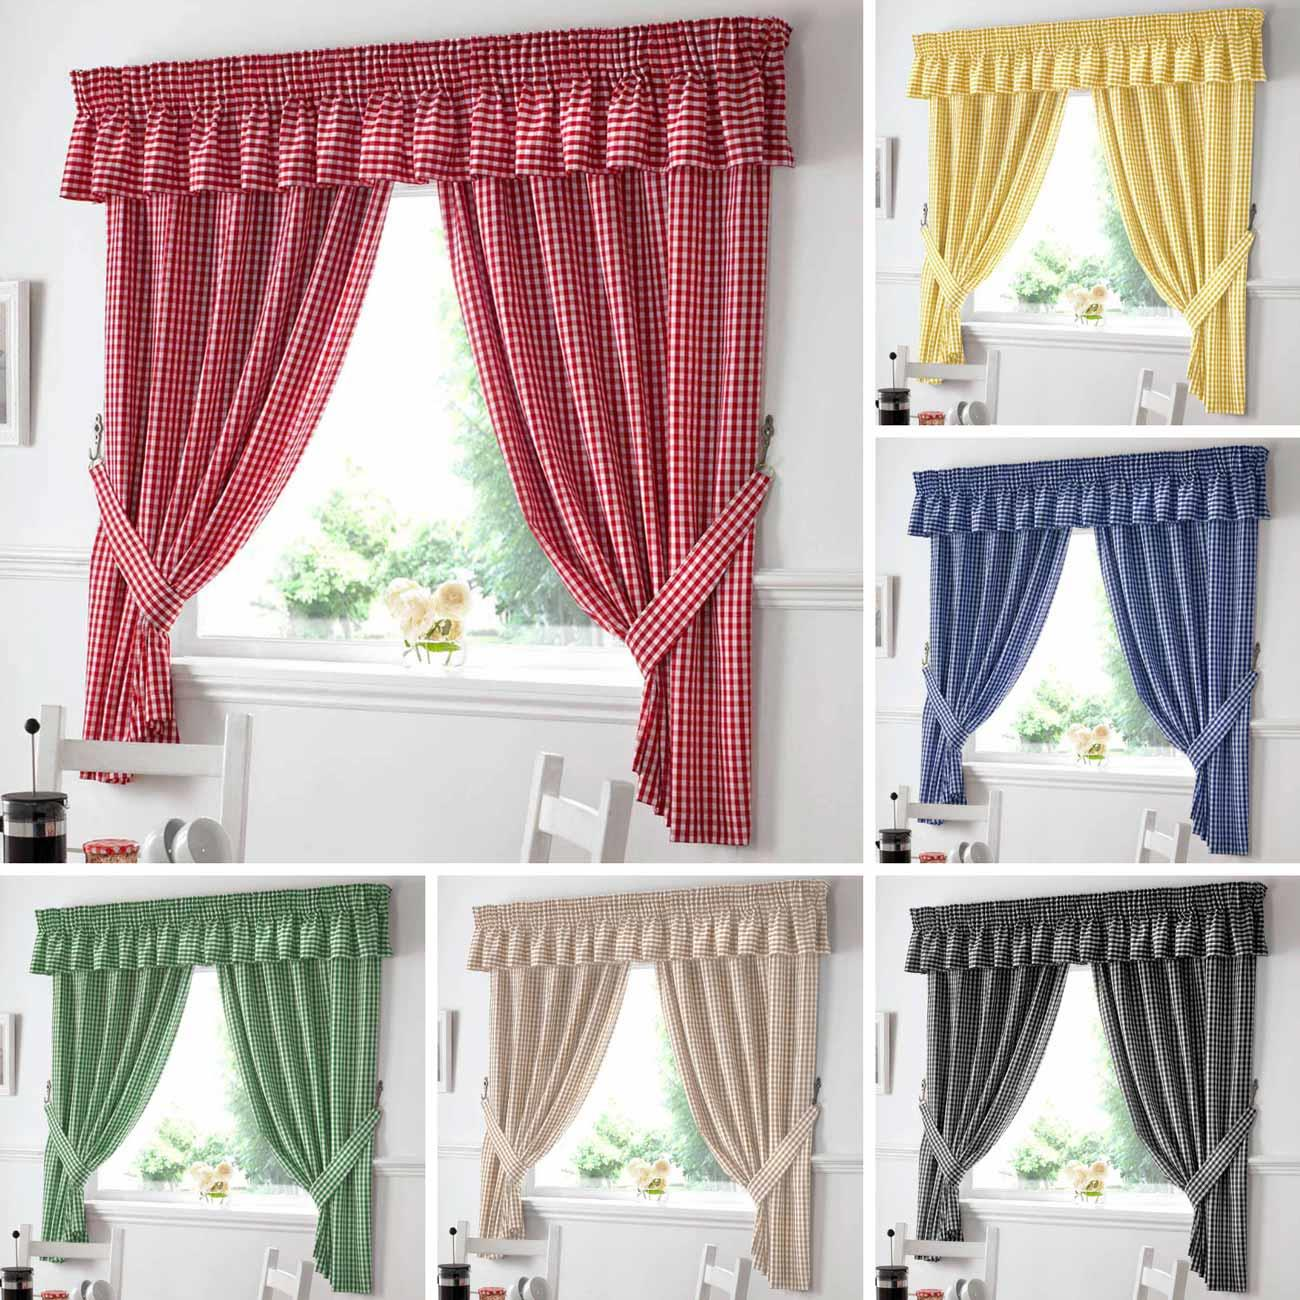 Gingham Check Kitchen Curtains Ready Made Pairs Curtains Pelmets Seat Pads Ebay